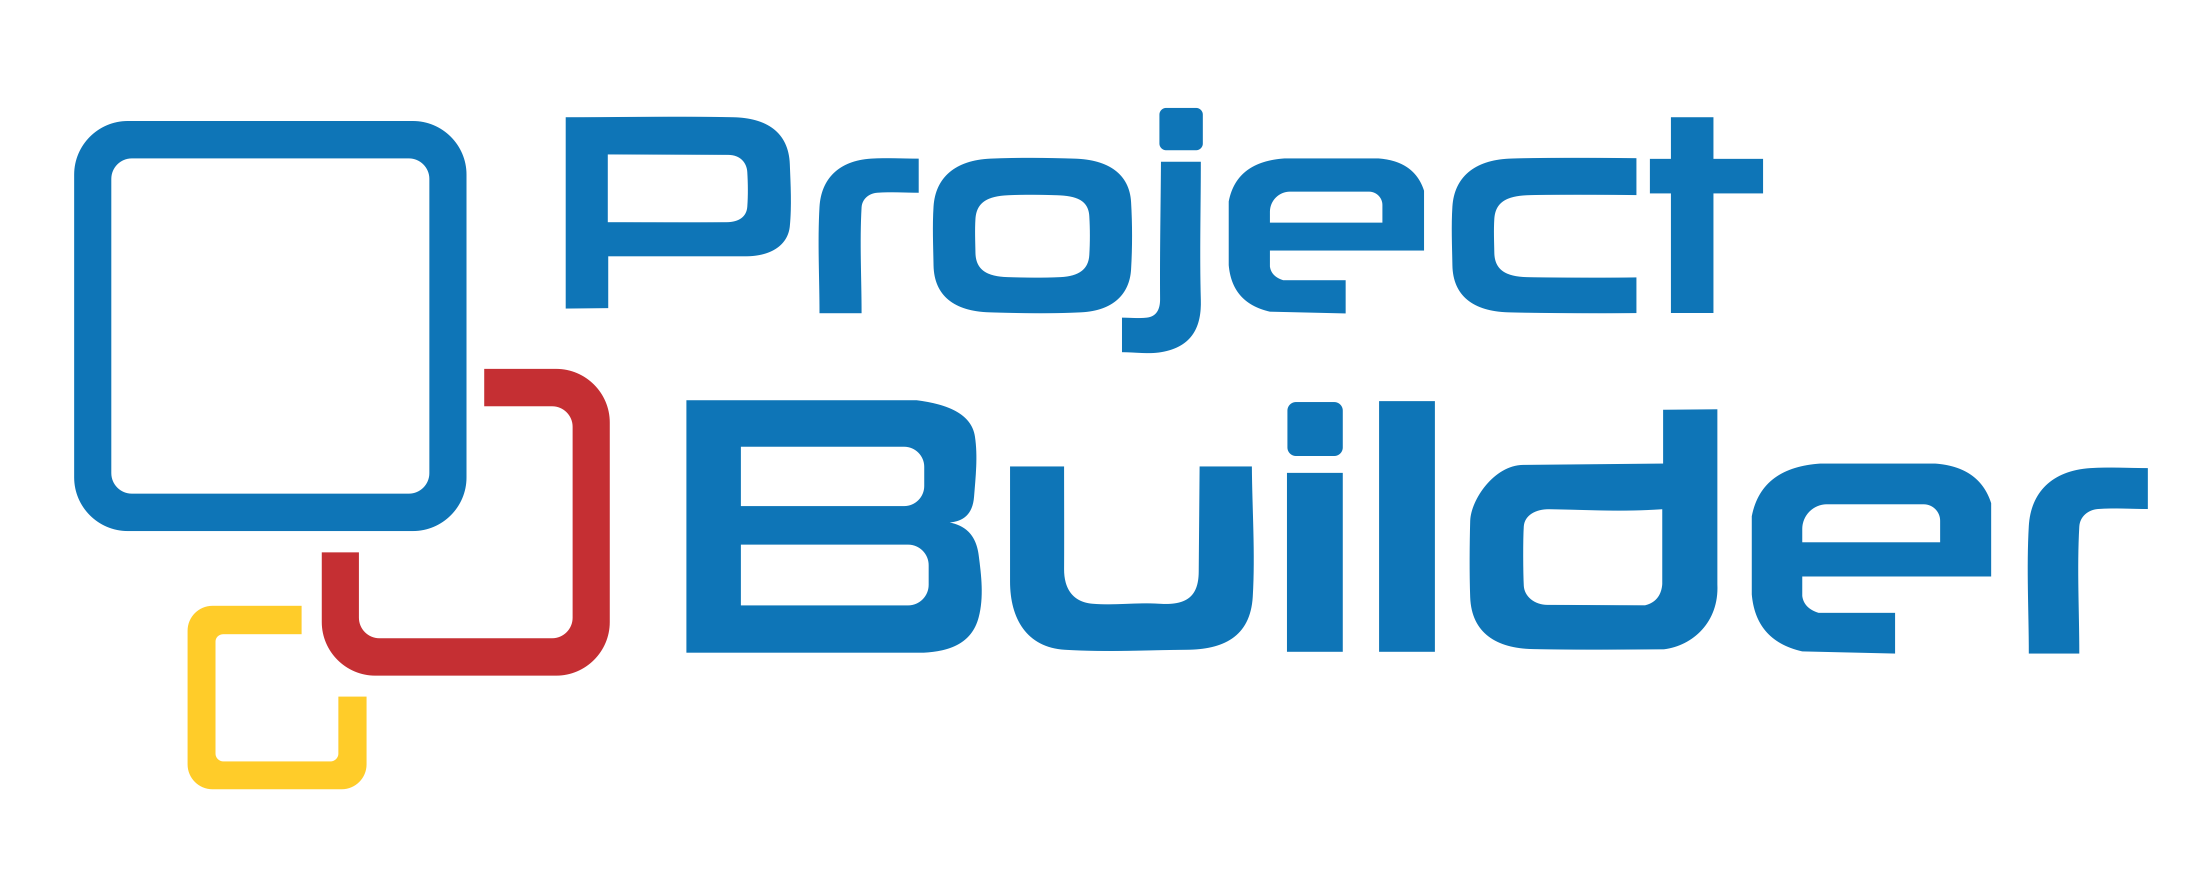 Project Builder